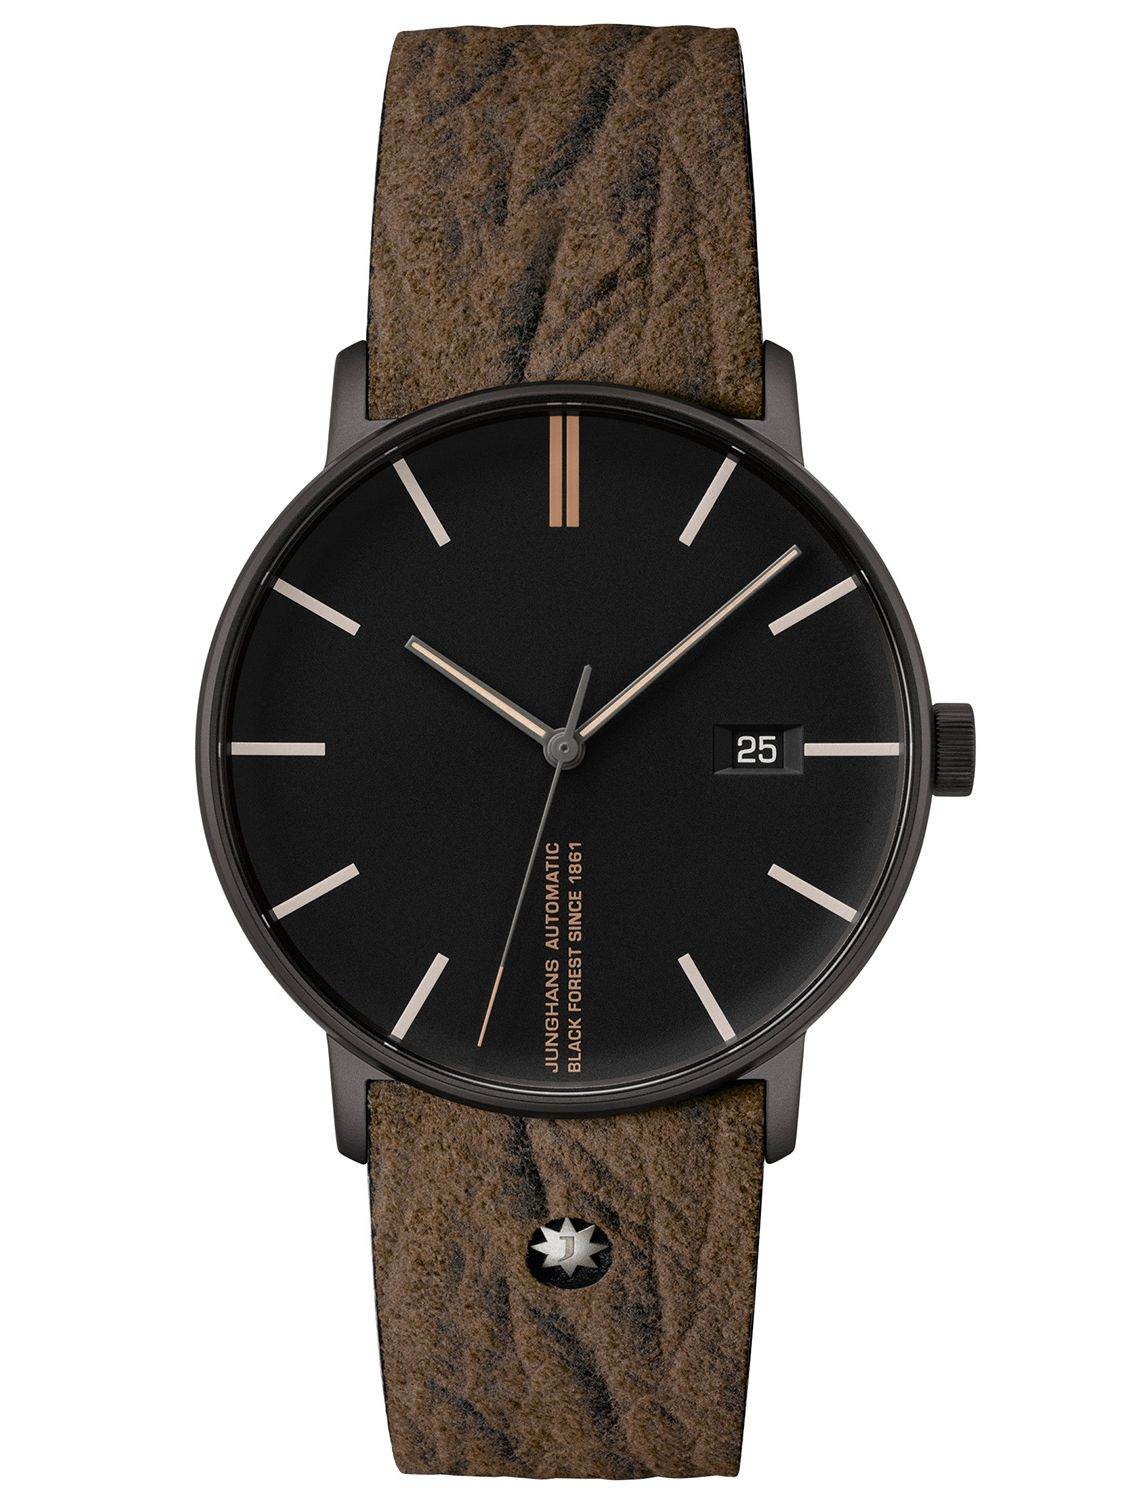 Junghans 21/21.21 Herrenuhr Form A Edition 21